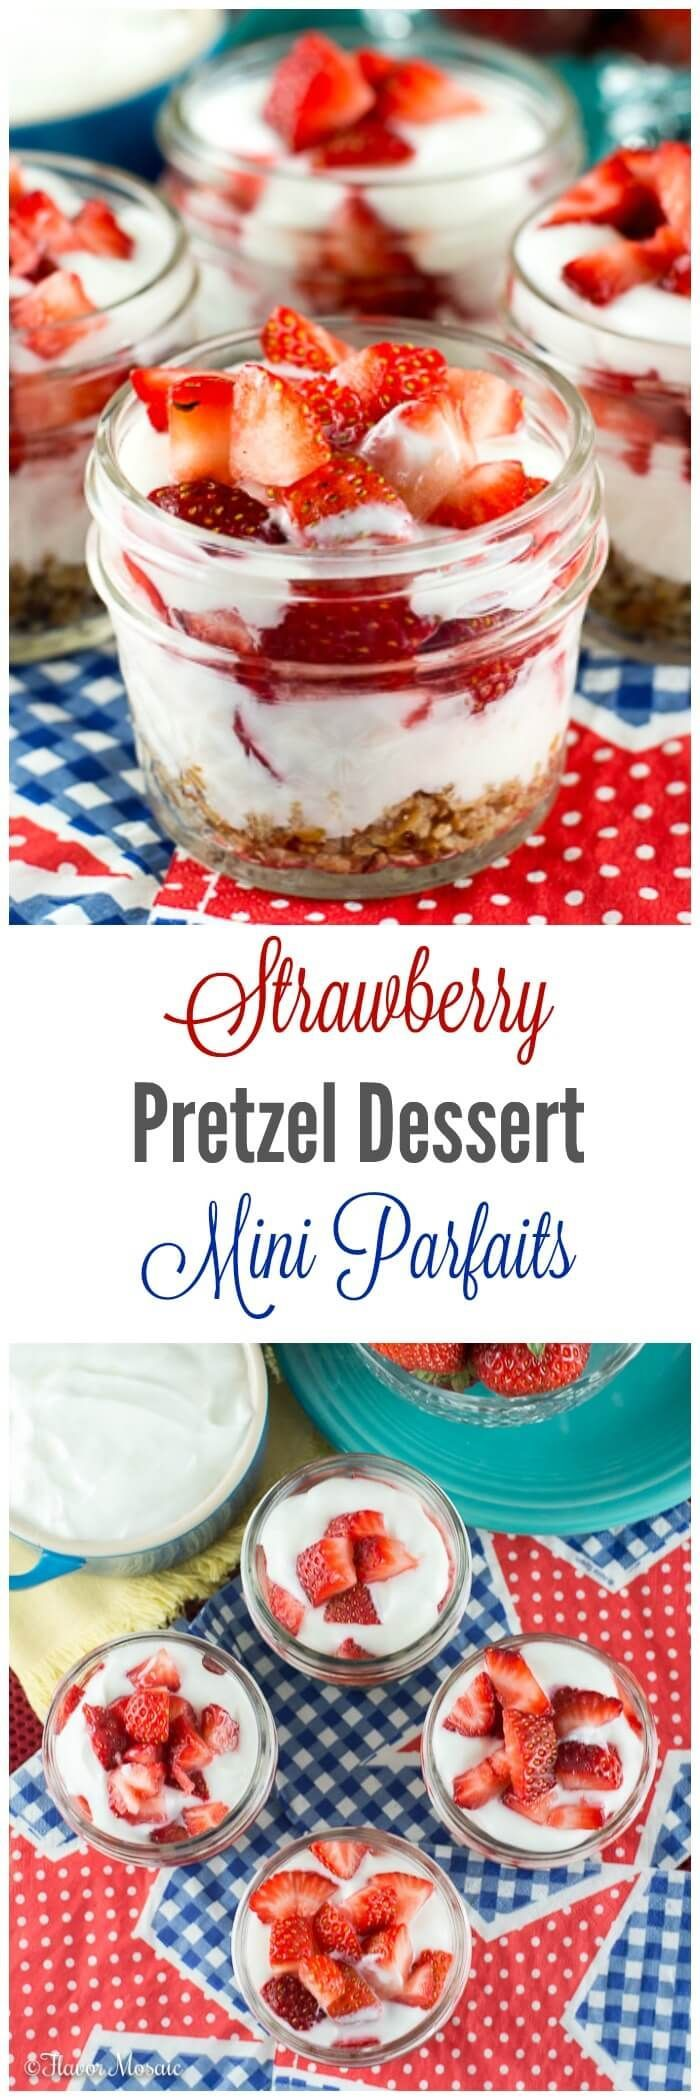 Strawberry Pretzel Dessert Mini Parfaits are a lightened up version of the traditional Strawberry Pretzel Dessert, made with Greek yogurt and served in mini mason jars. #SweetSwaps #SplendaSweeties #ad: